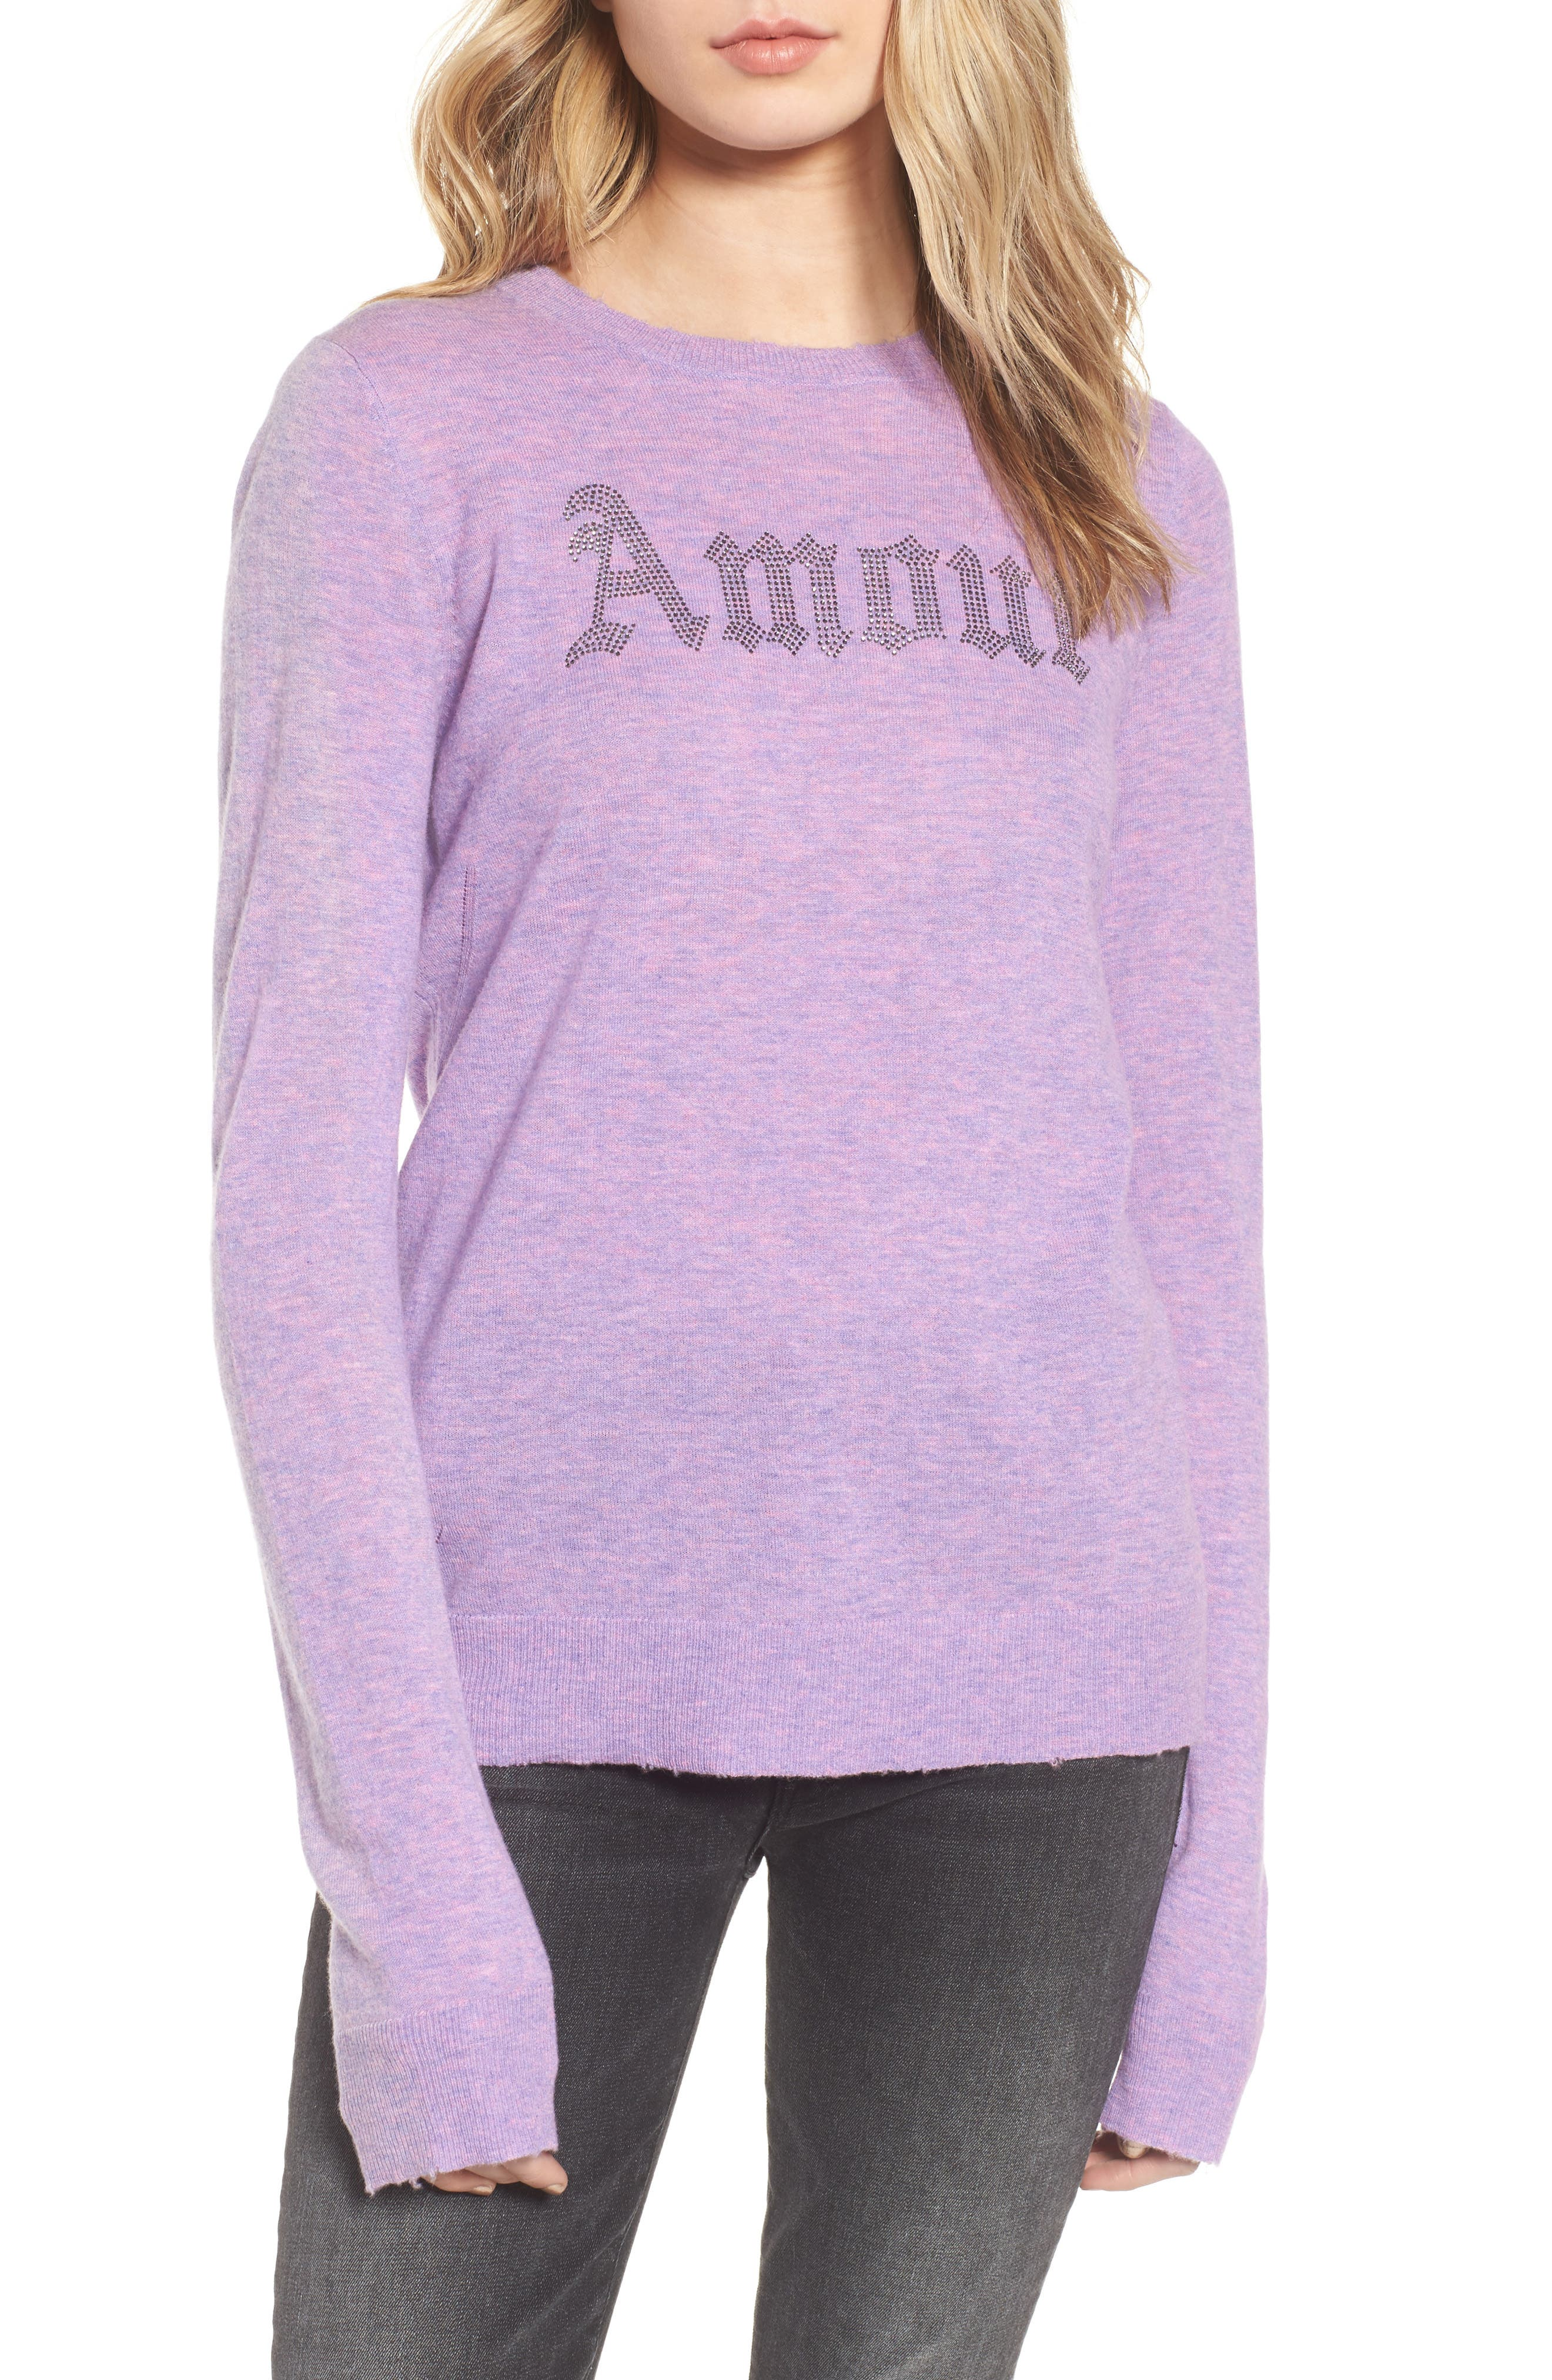 Miss Bis Cashmere Sweater,                             Main thumbnail 1, color,